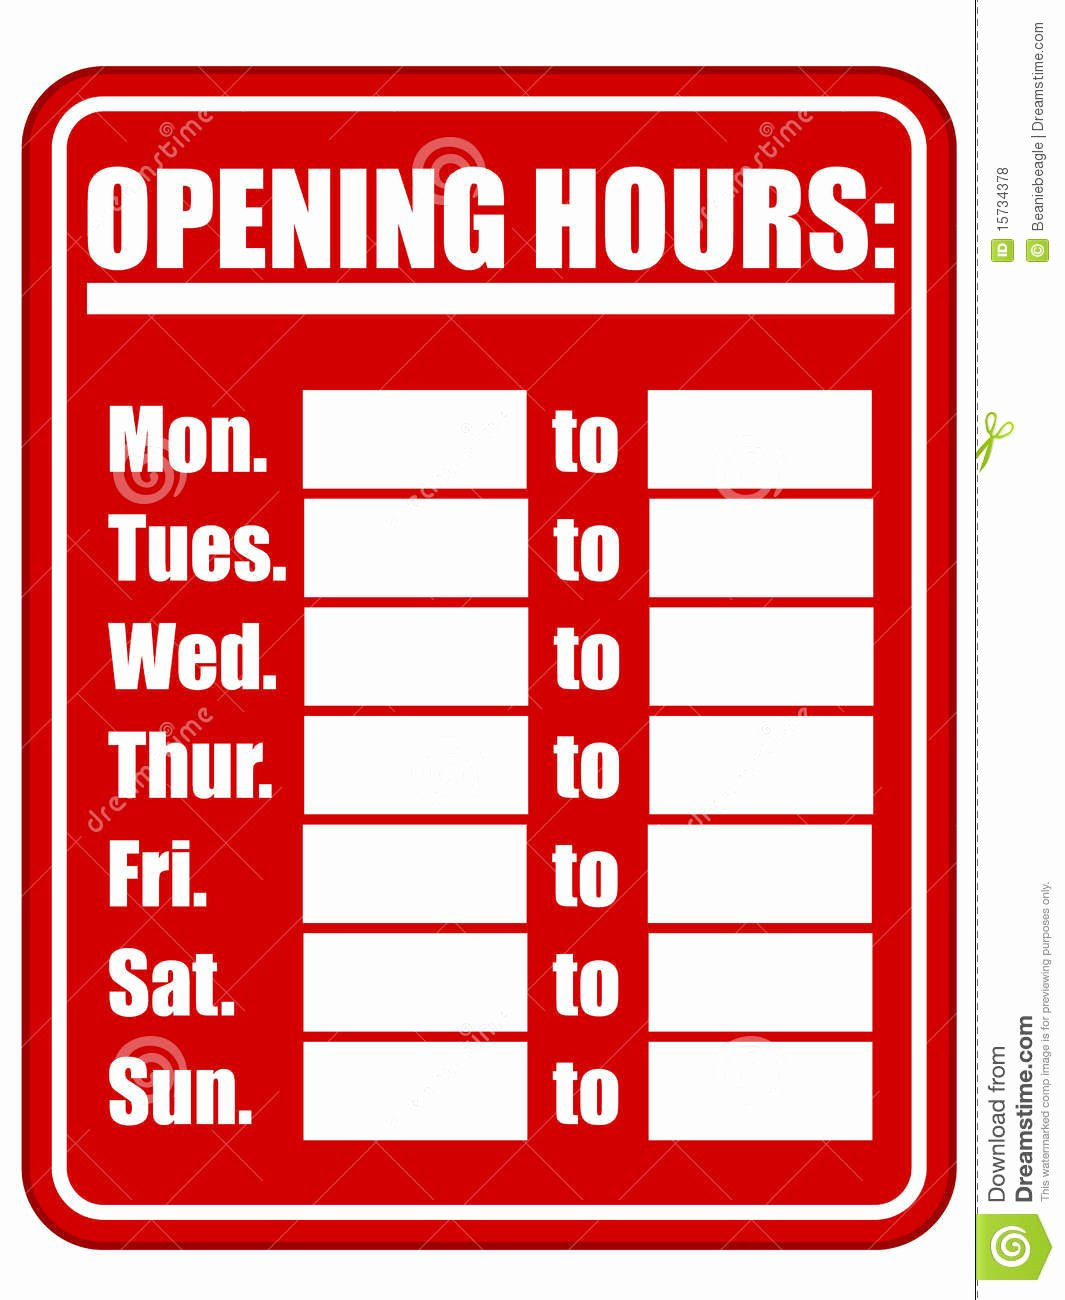 Business Hours Sign Template Awesome Opening Hours Sign Eps Stock Vector Illustration Of